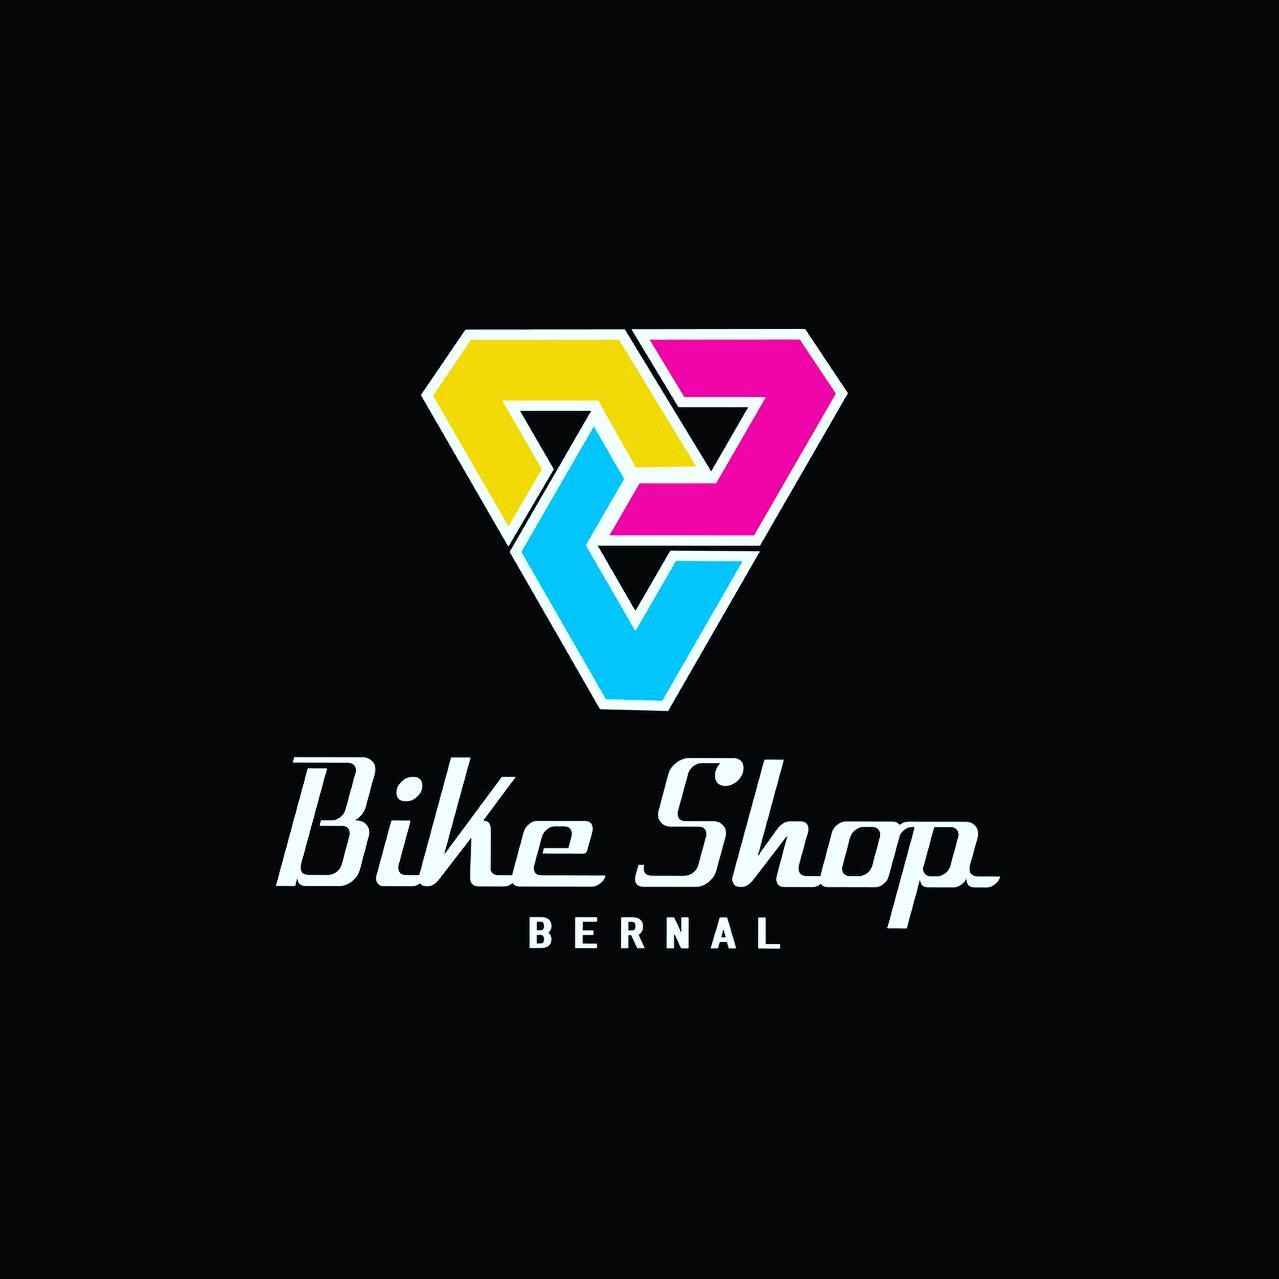 BIKE SHOP BERNAL